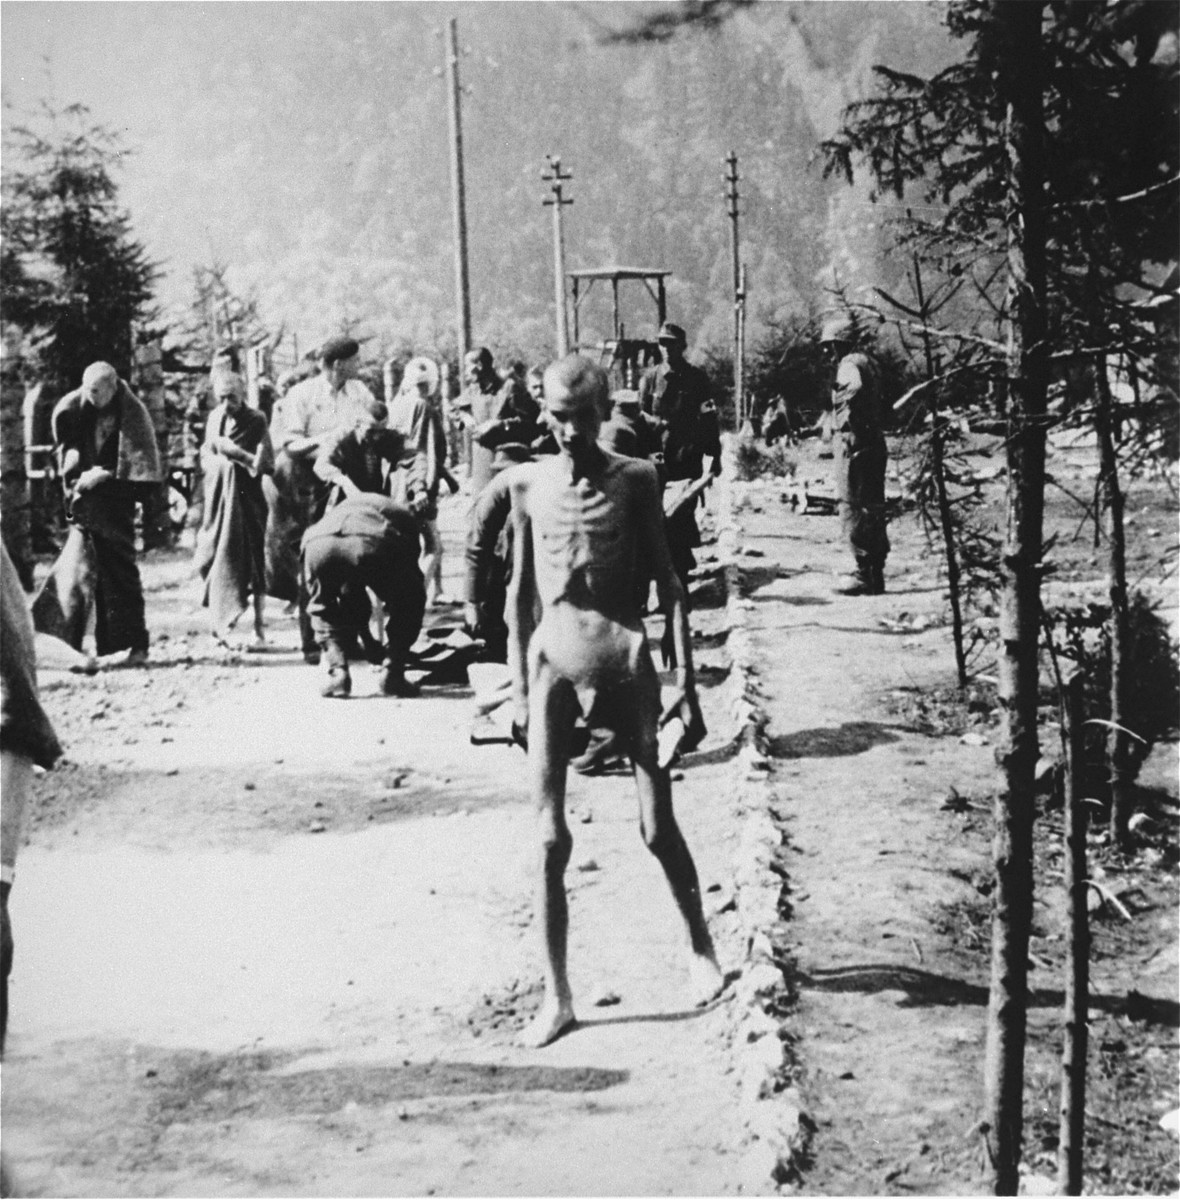 Emaciated survivors walk along a road in the Ebensee concentration camp, past a group of Austrian civilians who have been forcibly brought in to help evacuate survivors who are too weak to walk.